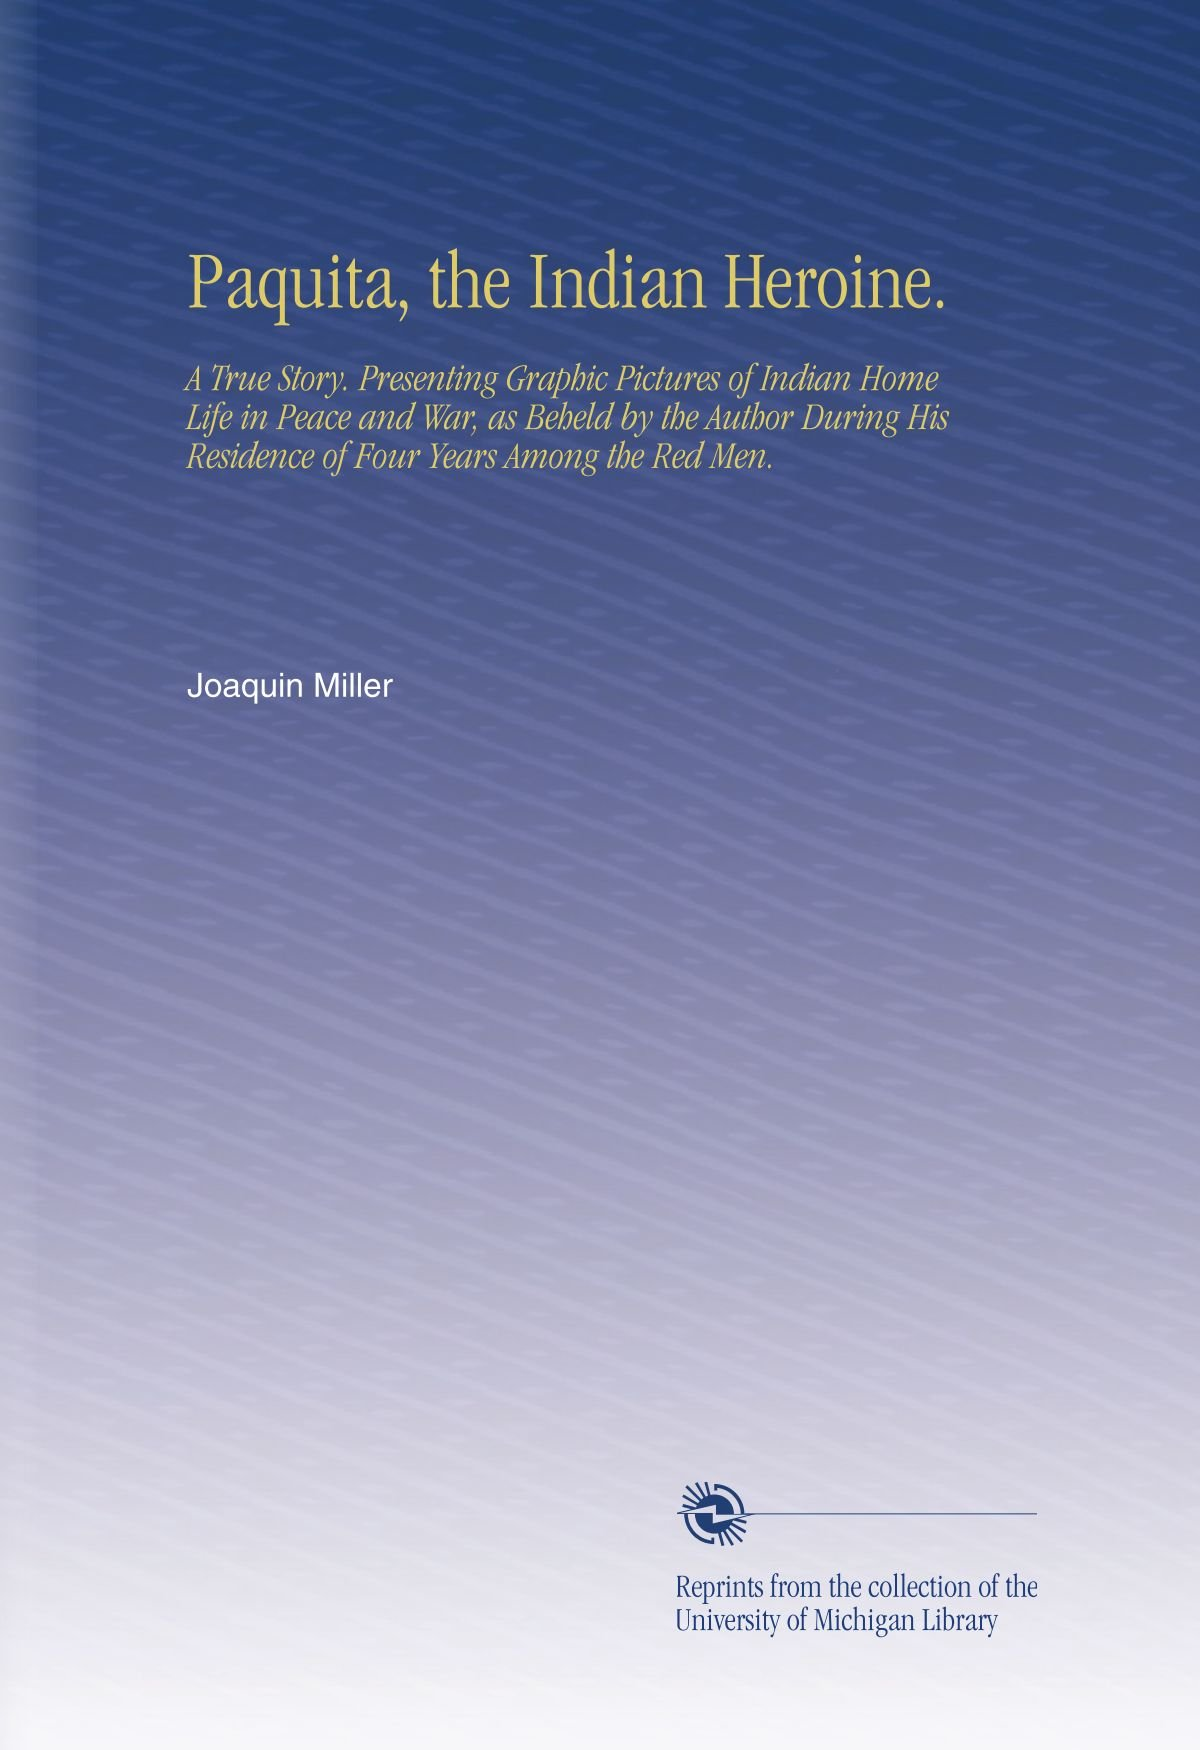 Paquita, the Indian Heroine.: A True Story. Presenting Graphic Pictures of Indian Home Life in Peace and War, as Beheld by the Author During His Residence of Four Years Among the Red Men. PDF